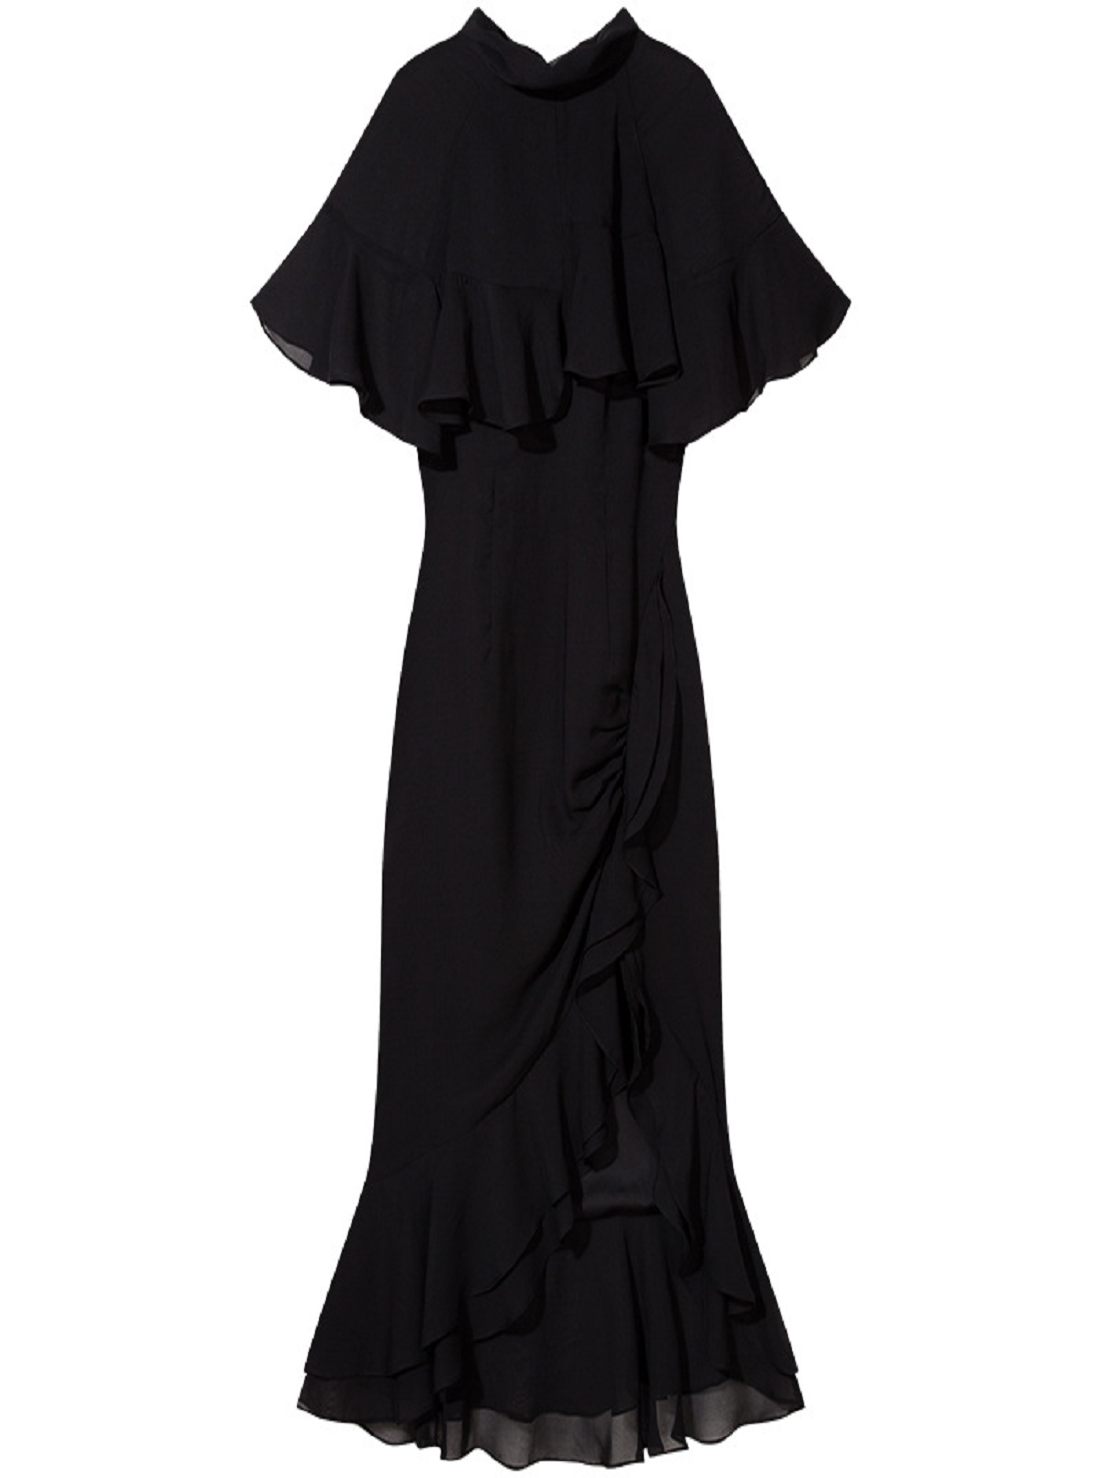 Wholesale Stand-up Collar Black Dress